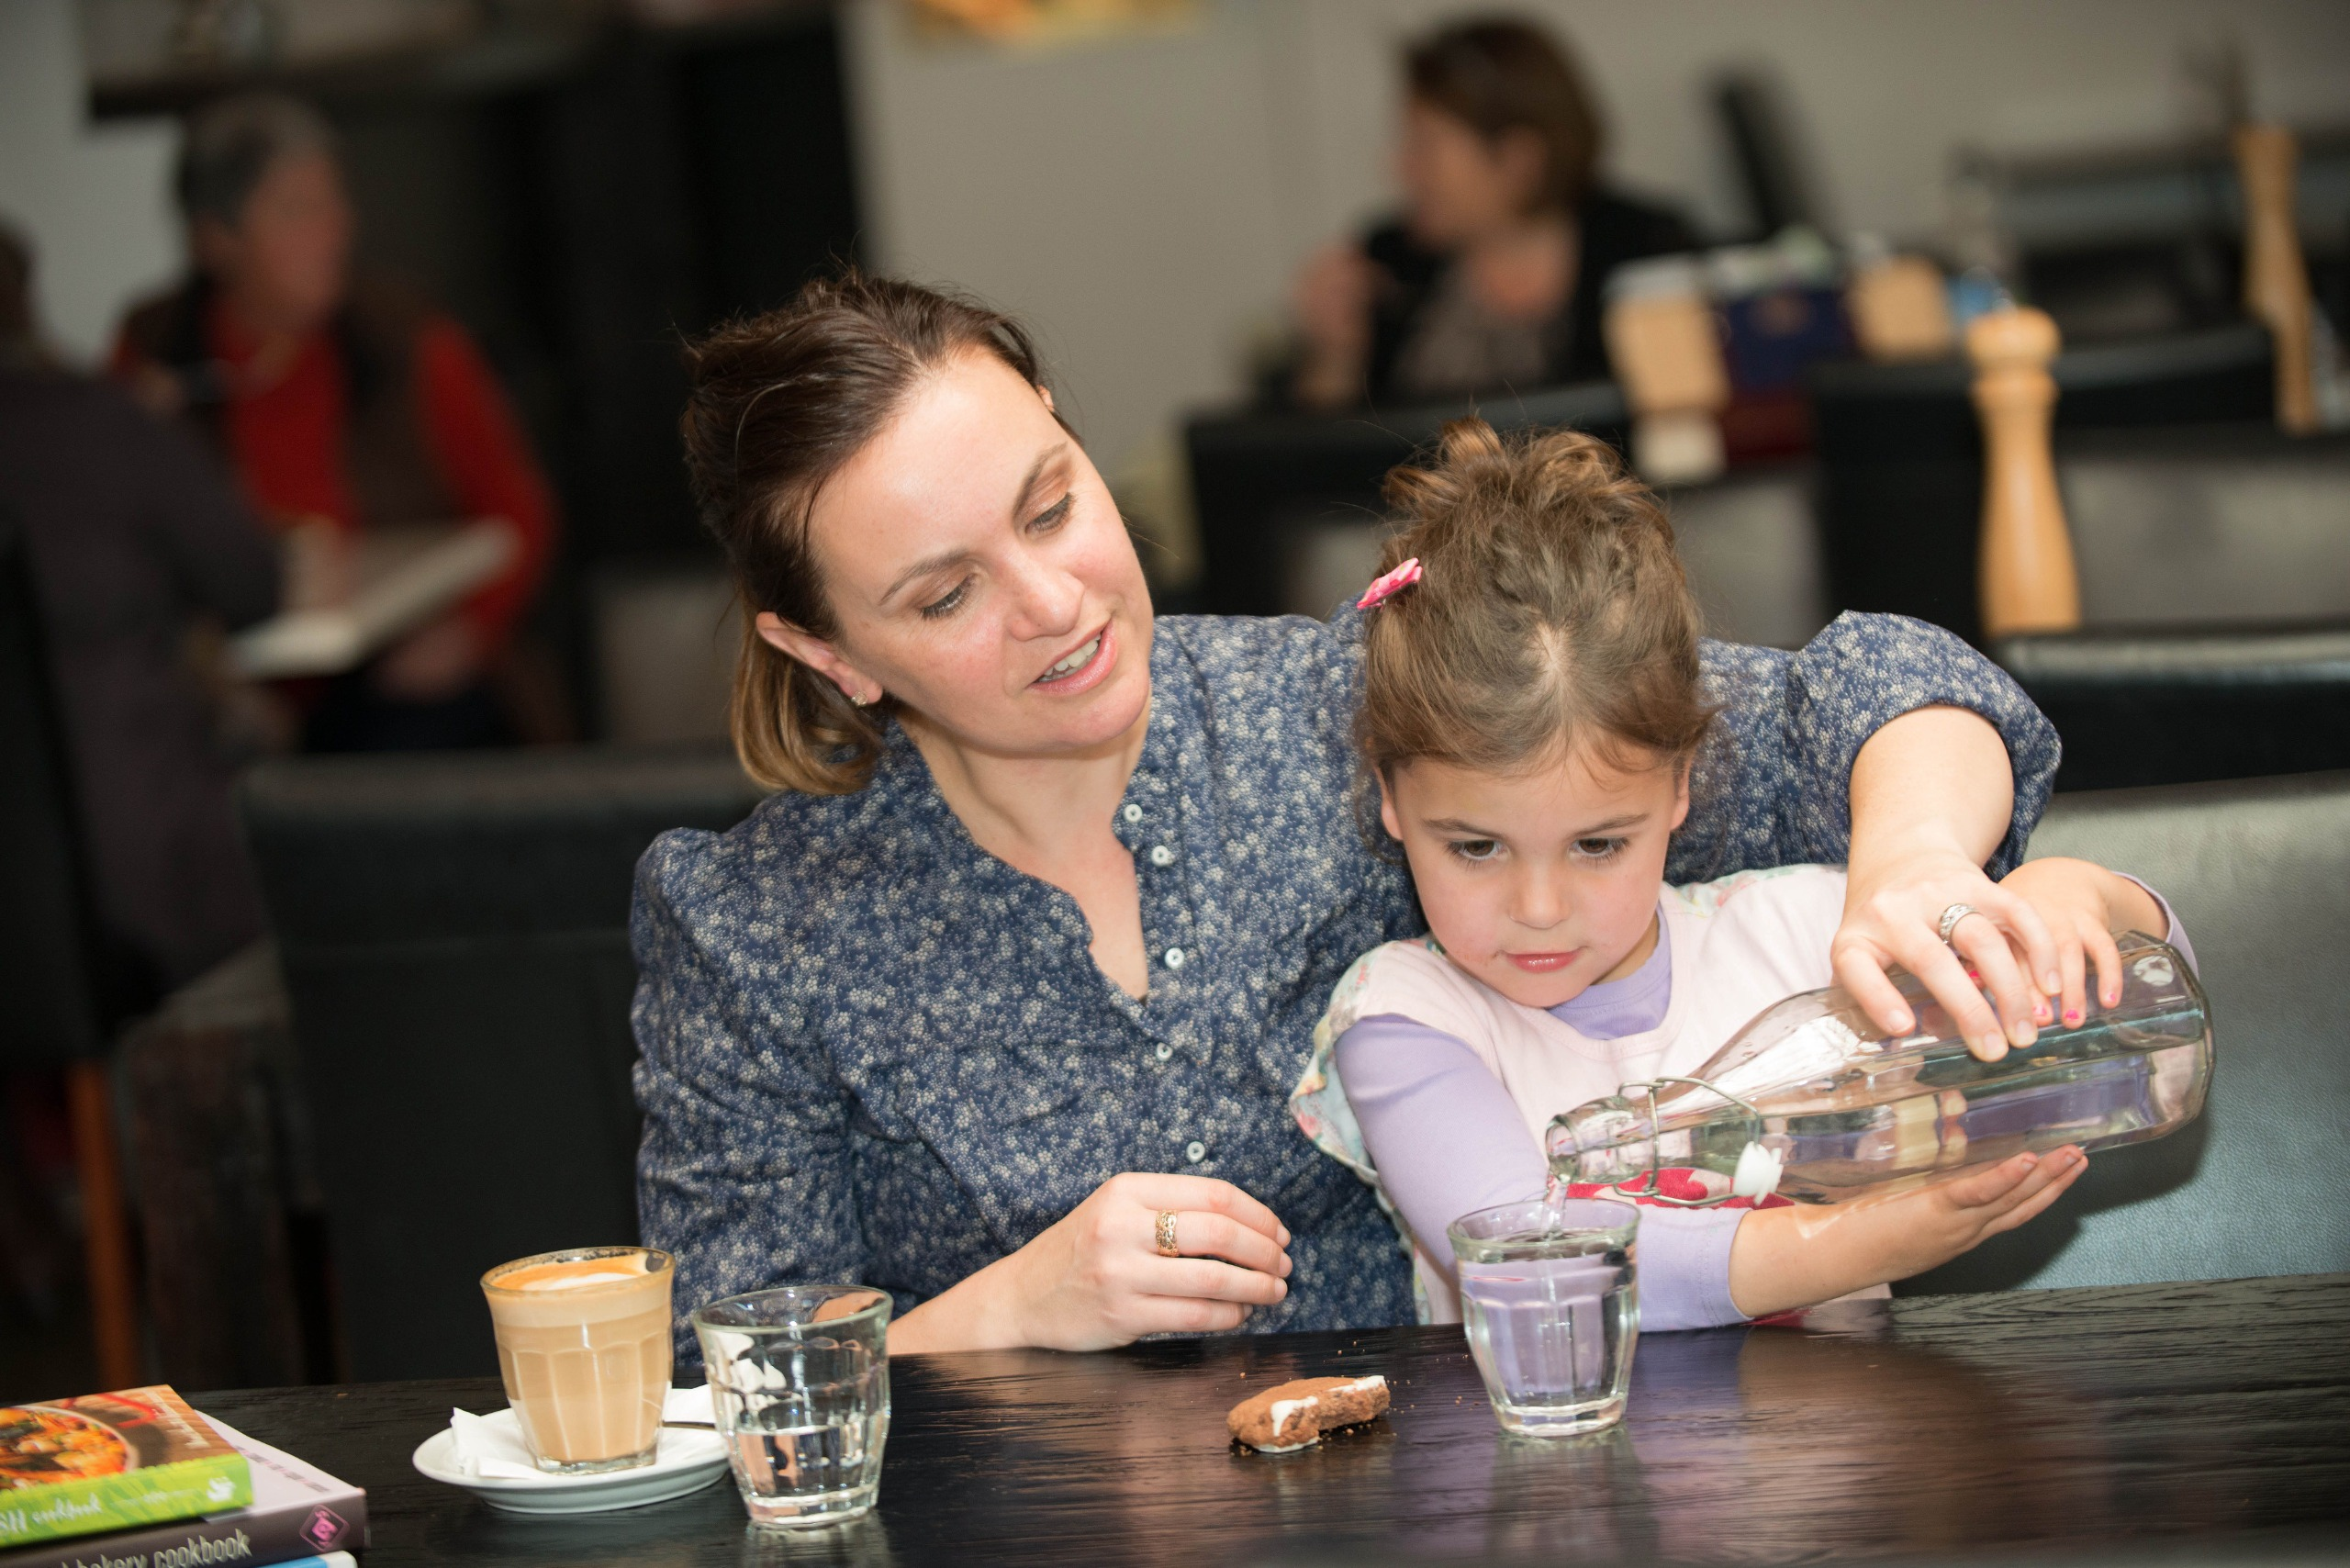 Mother and child at a cafe drinking water